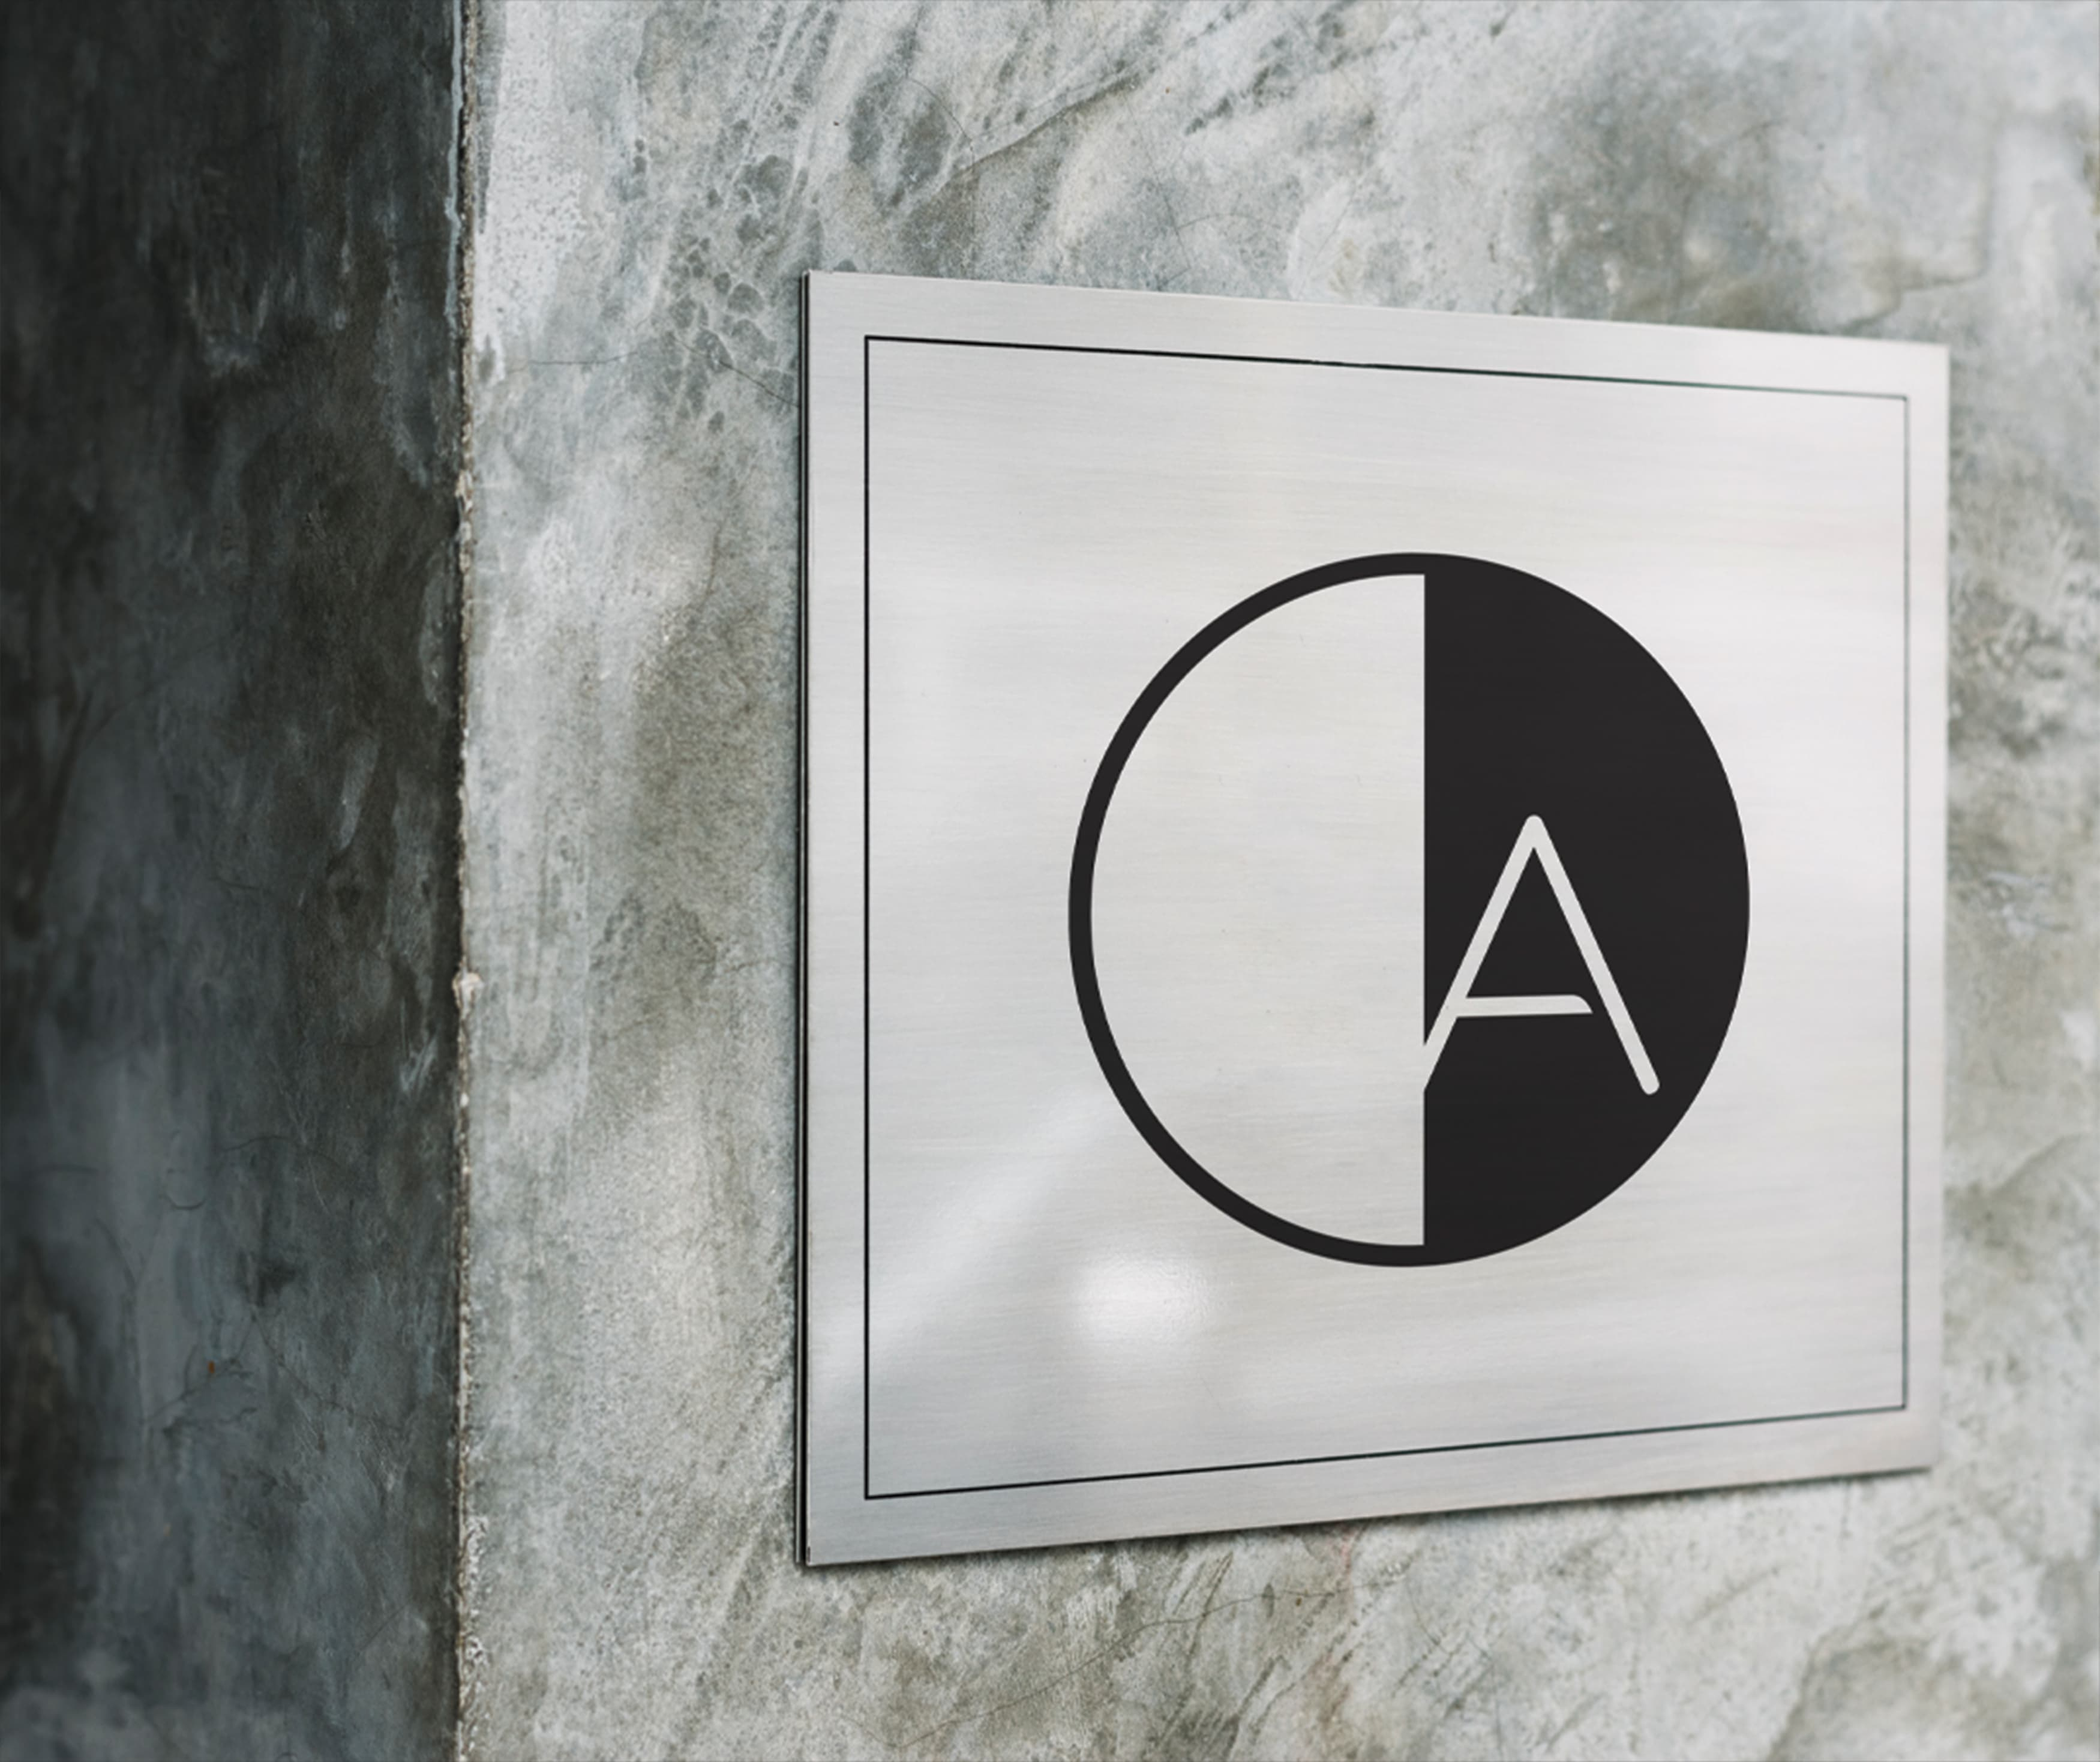 American Dream Retail Project Design in East Rutherford, New Jersey. Branded plaque sign identity.